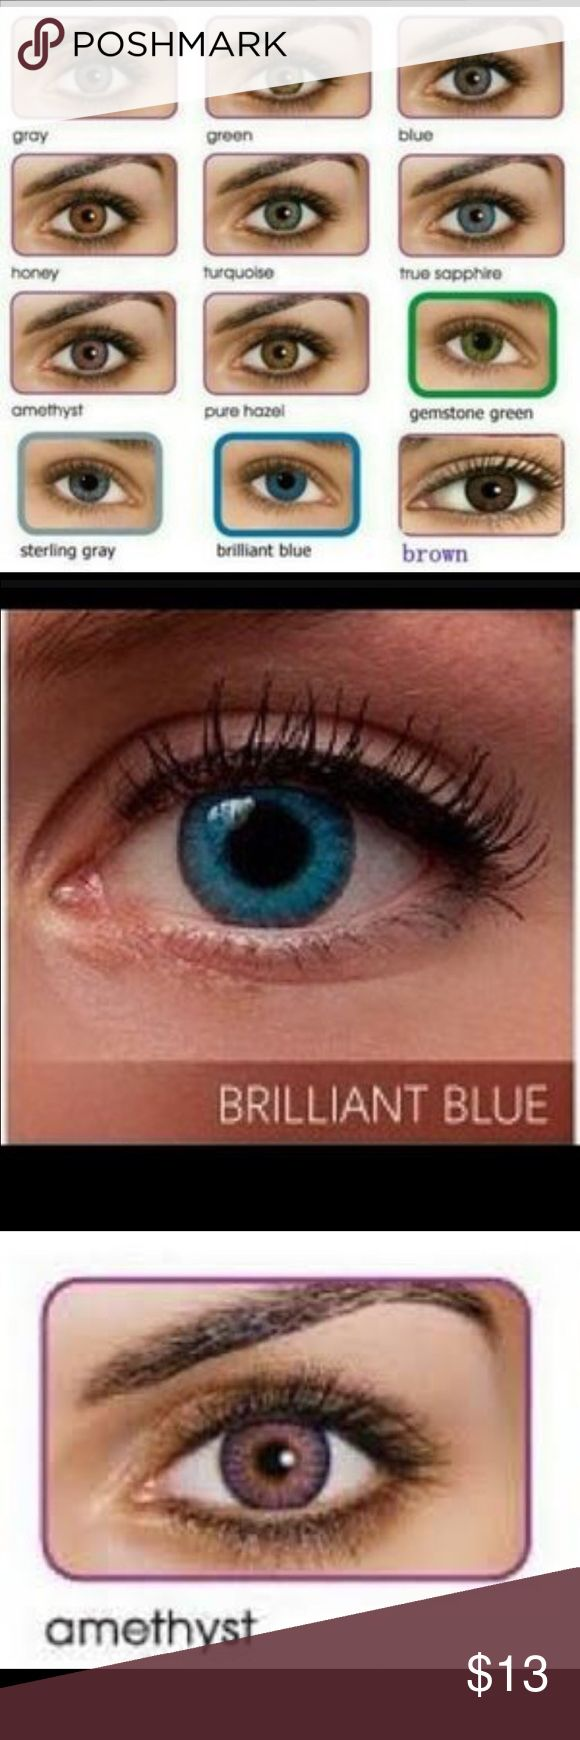 The 25 best pure hazel contacts ideas on pinterest eye contact the 25 best pure hazel contacts ideas on pinterest eye contact lenses hazel eye contacts and eye color charts nvjuhfo Image collections